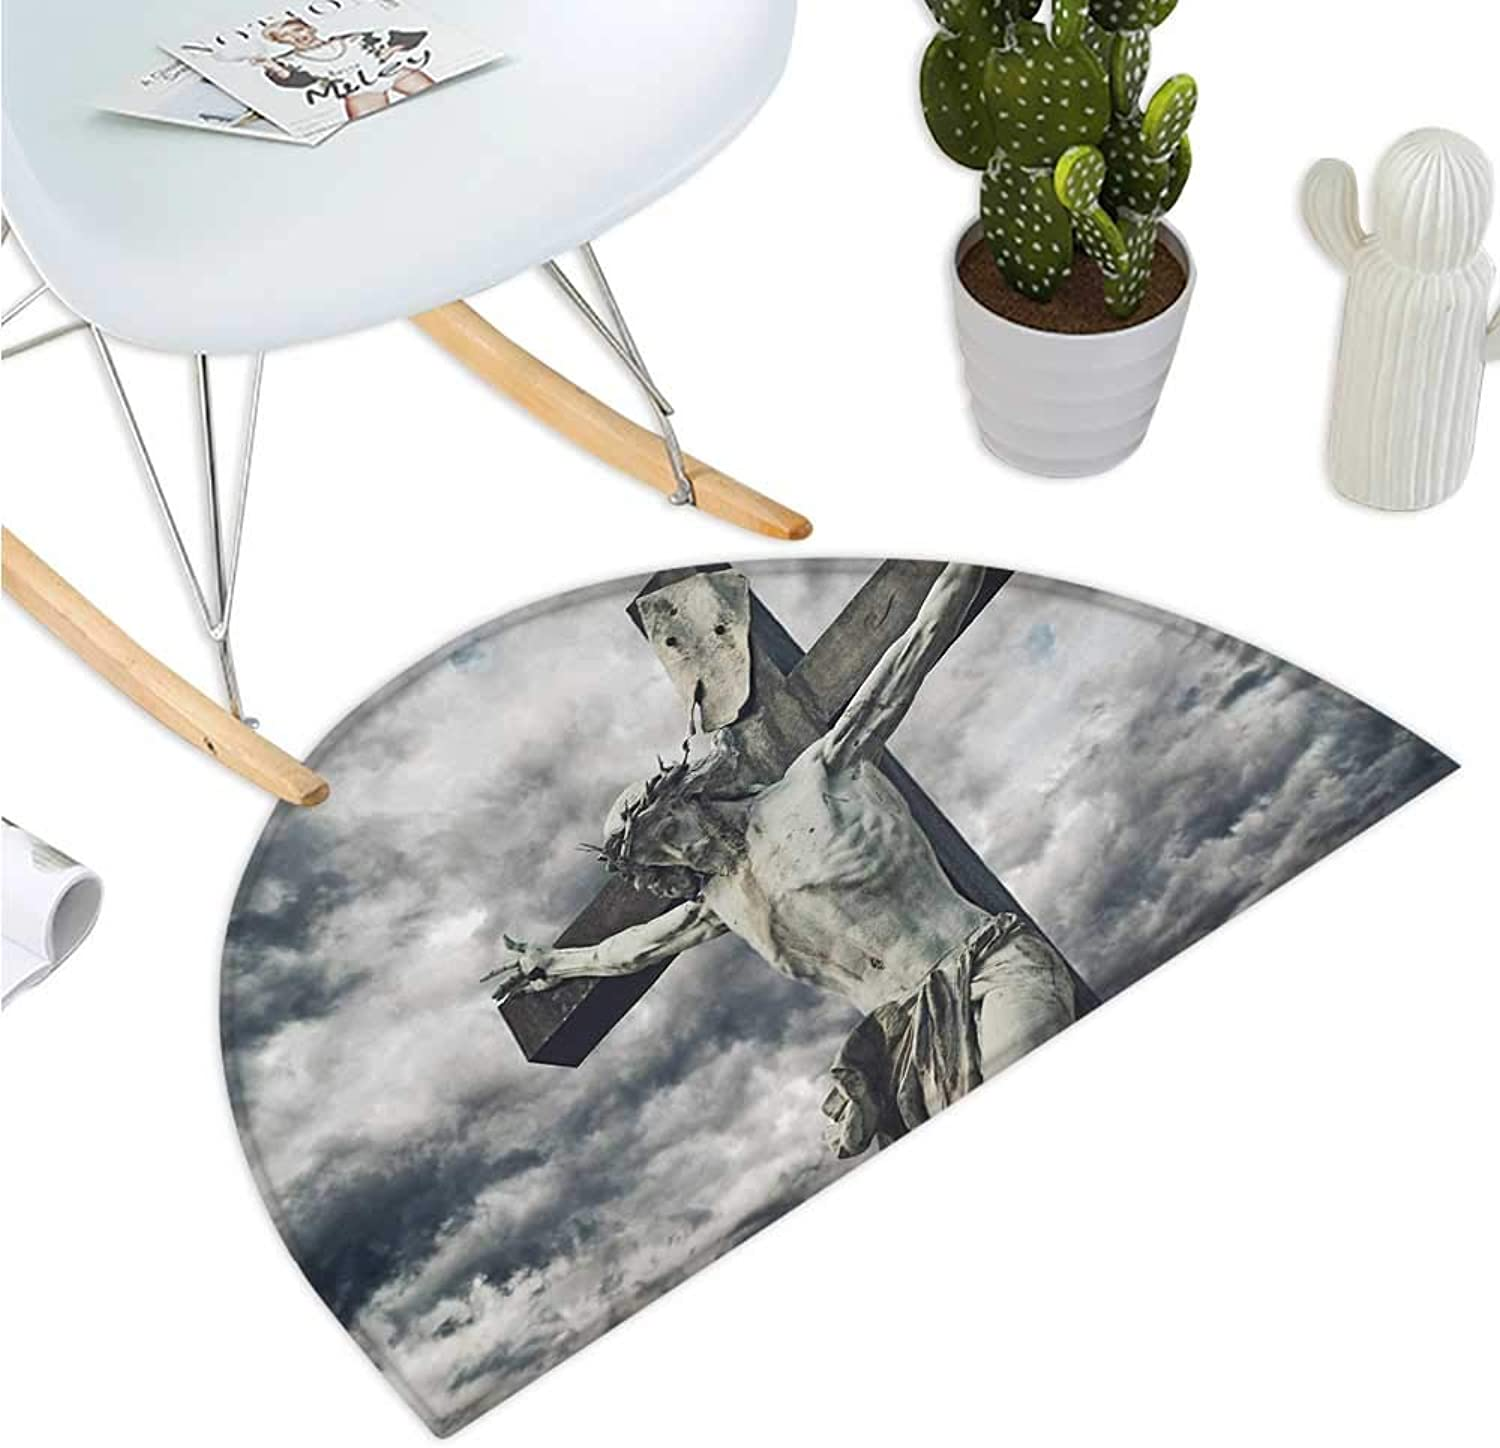 Religious Half Round Door mats Cross with Religious Character Statue Stormy Dramatic Cloudscape Scene Entry Door Mat H 35.4  xD 53.1  Tan Dark bluee White